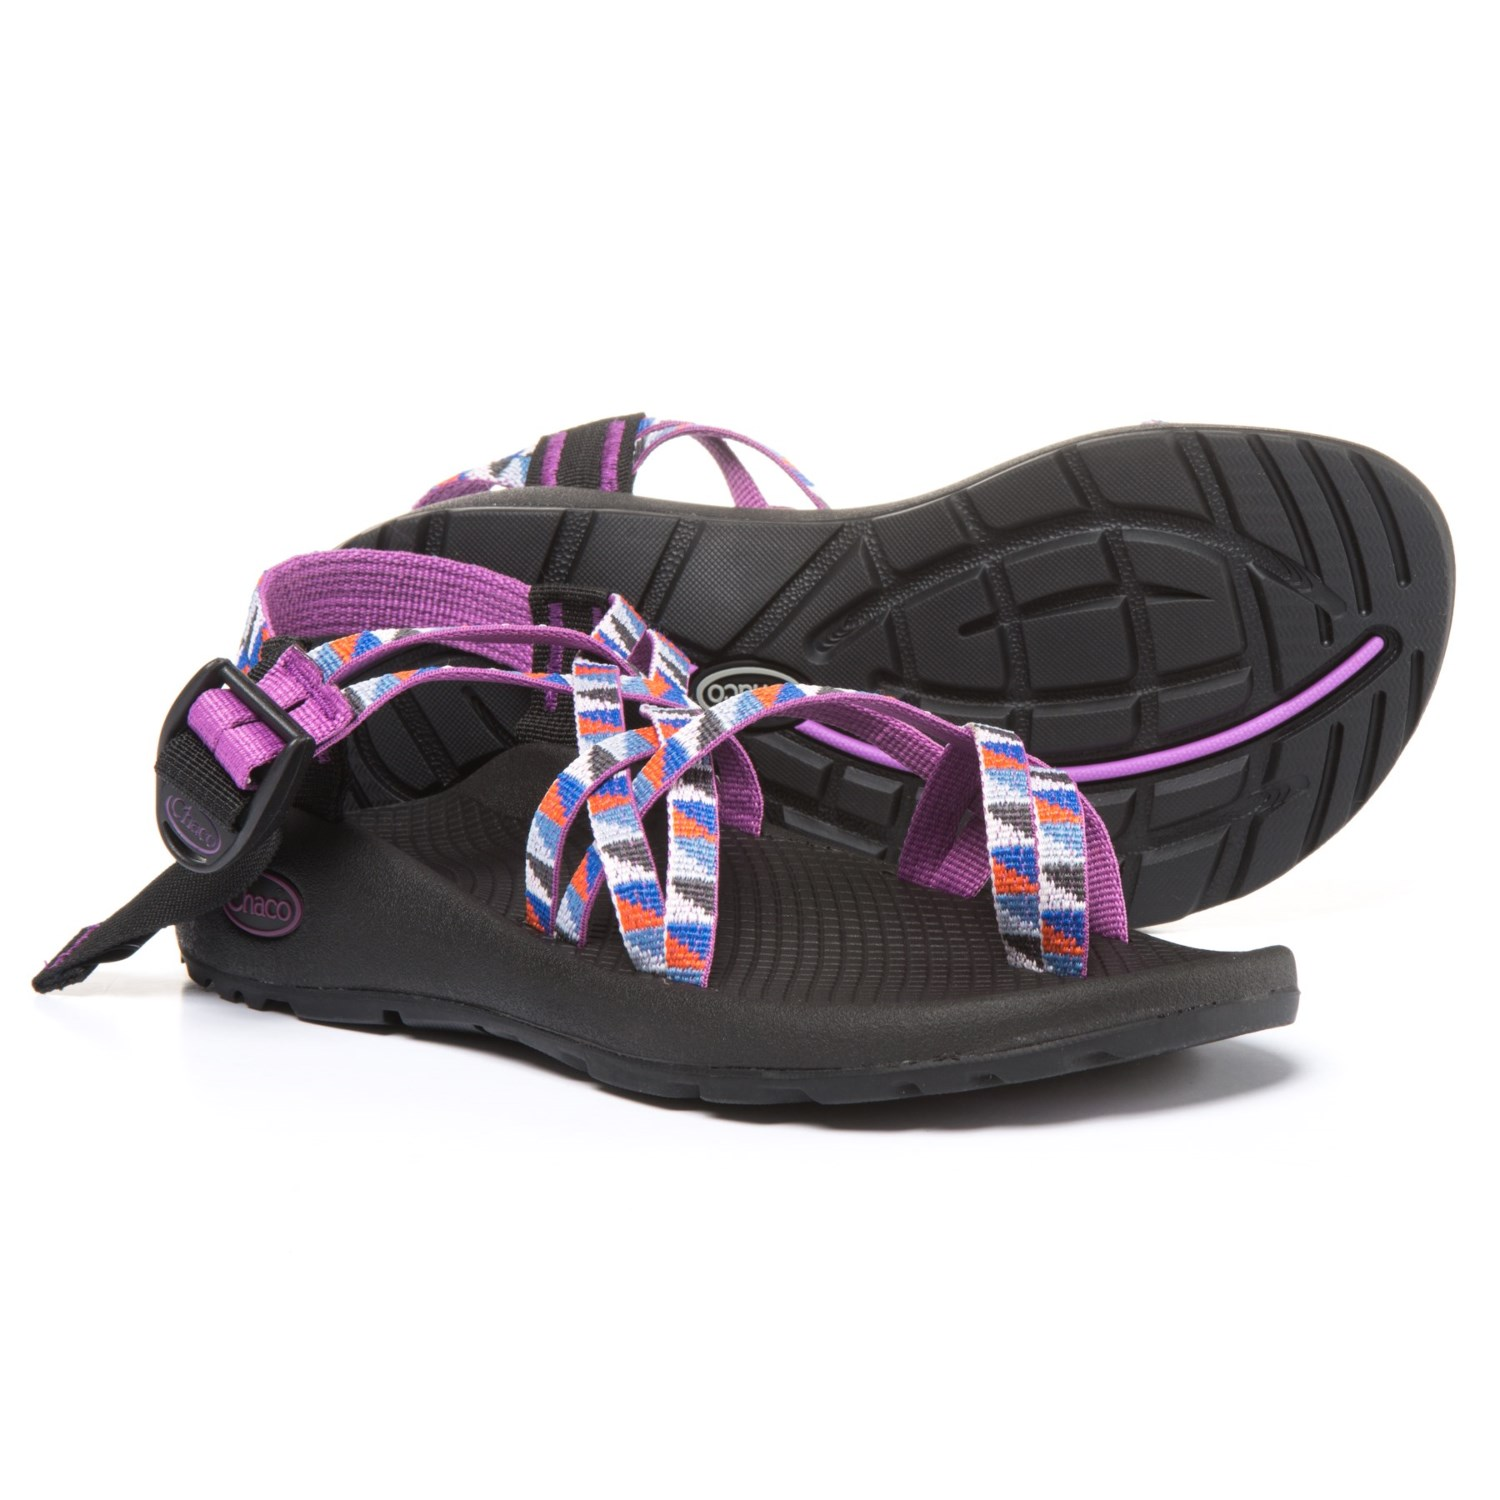 8606a8c0f62 Chaco ZX 2® Classic Sport Sandals (For Women) in Camper Purple